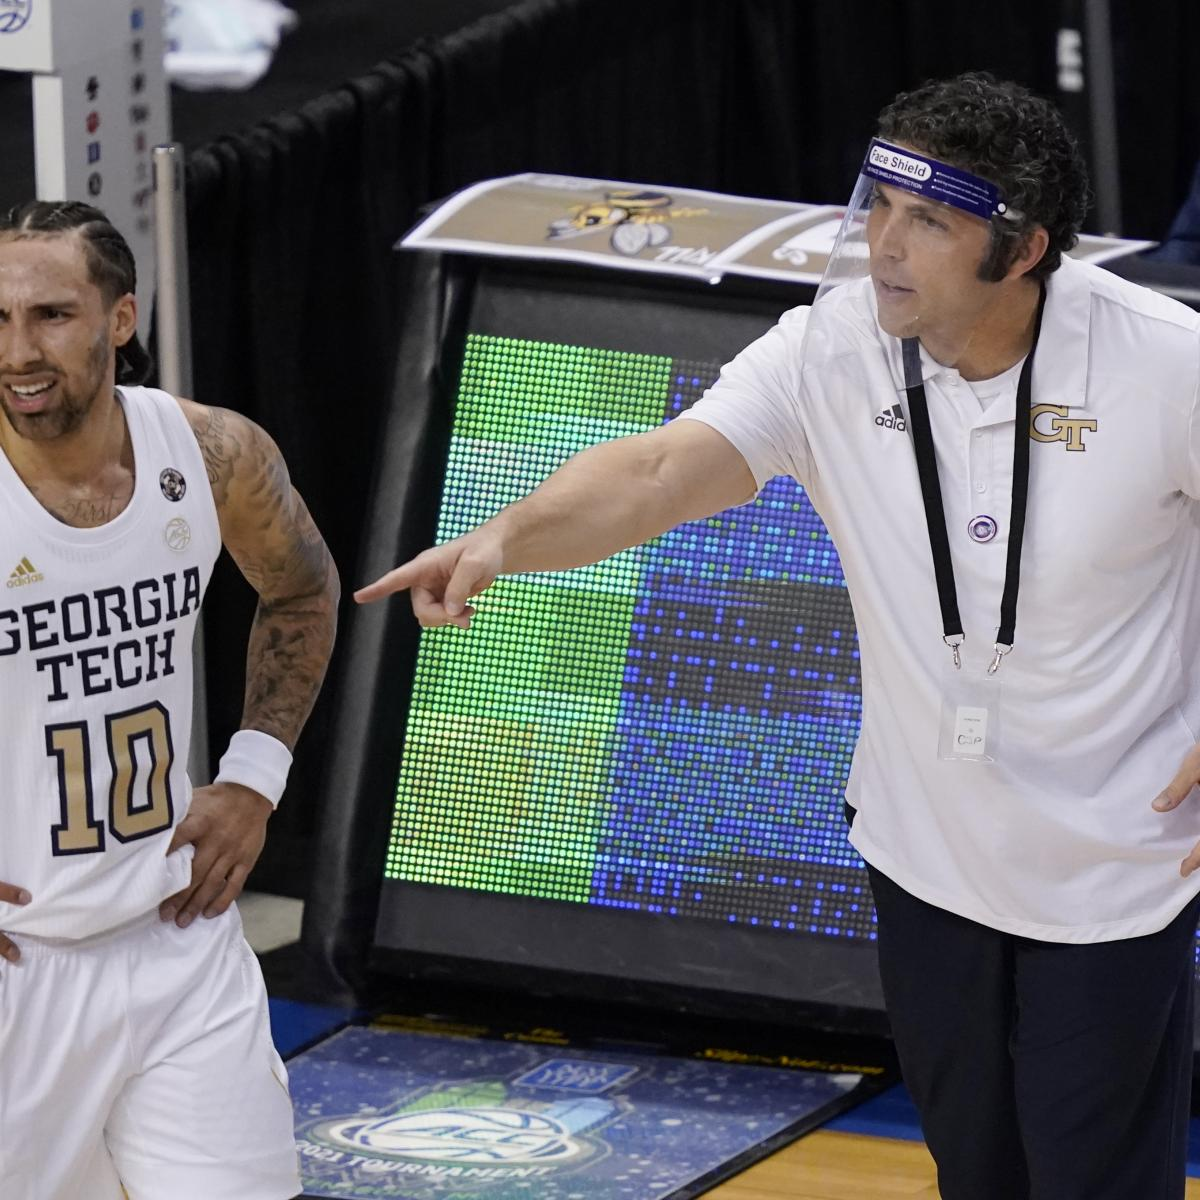 Virginia Out of ACC Tournament After Positive COVID-19 Test Before Semifinal – Bleacher Report